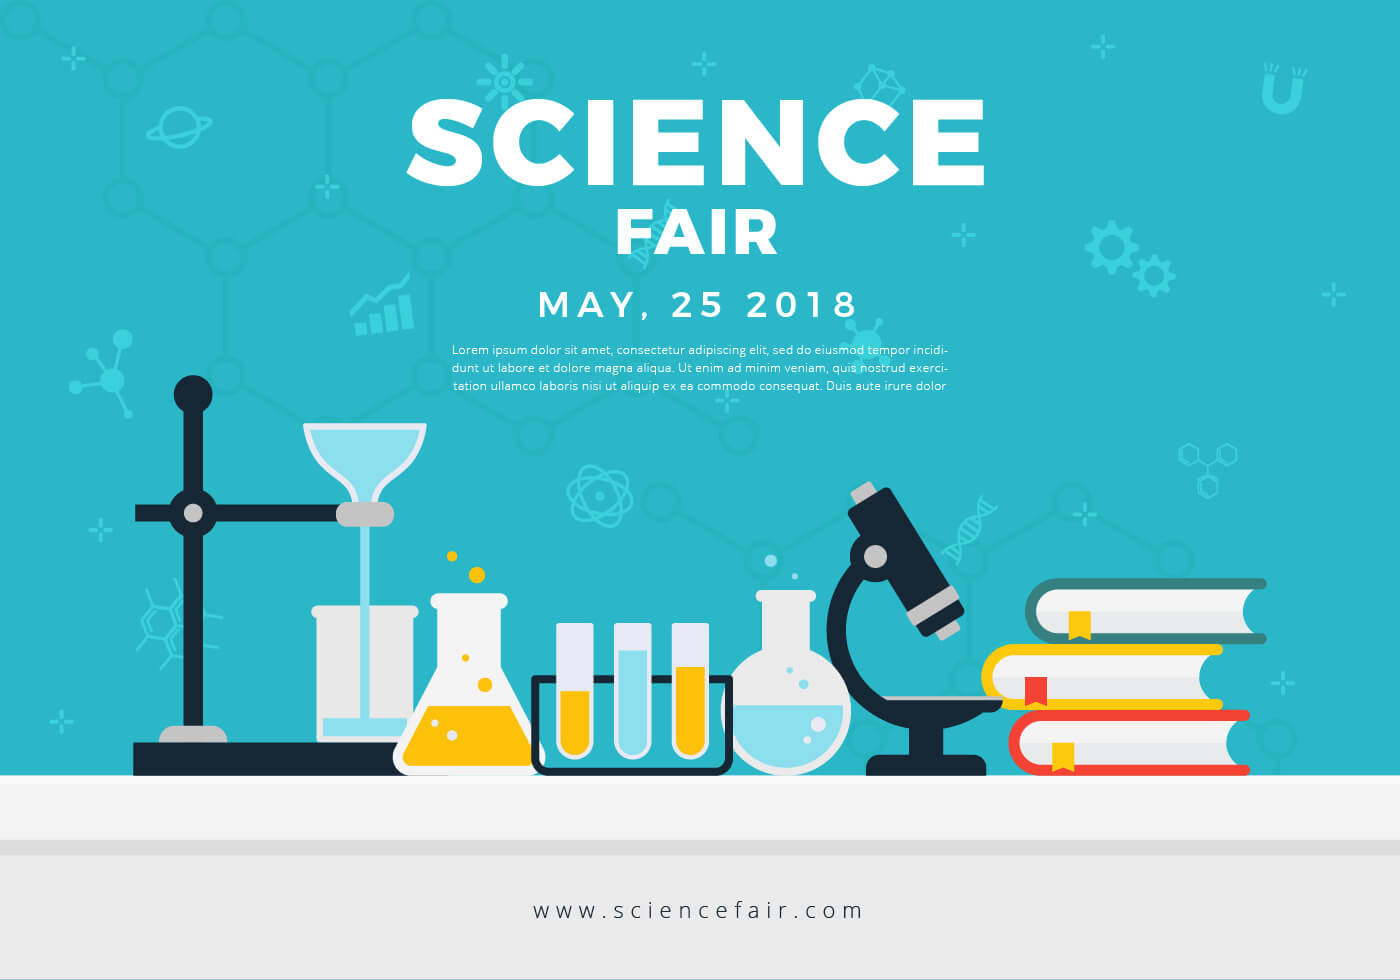 Science Fair Poster Banner - Download Free Vectors, Clipart Pertaining To Science Fair Banner Template